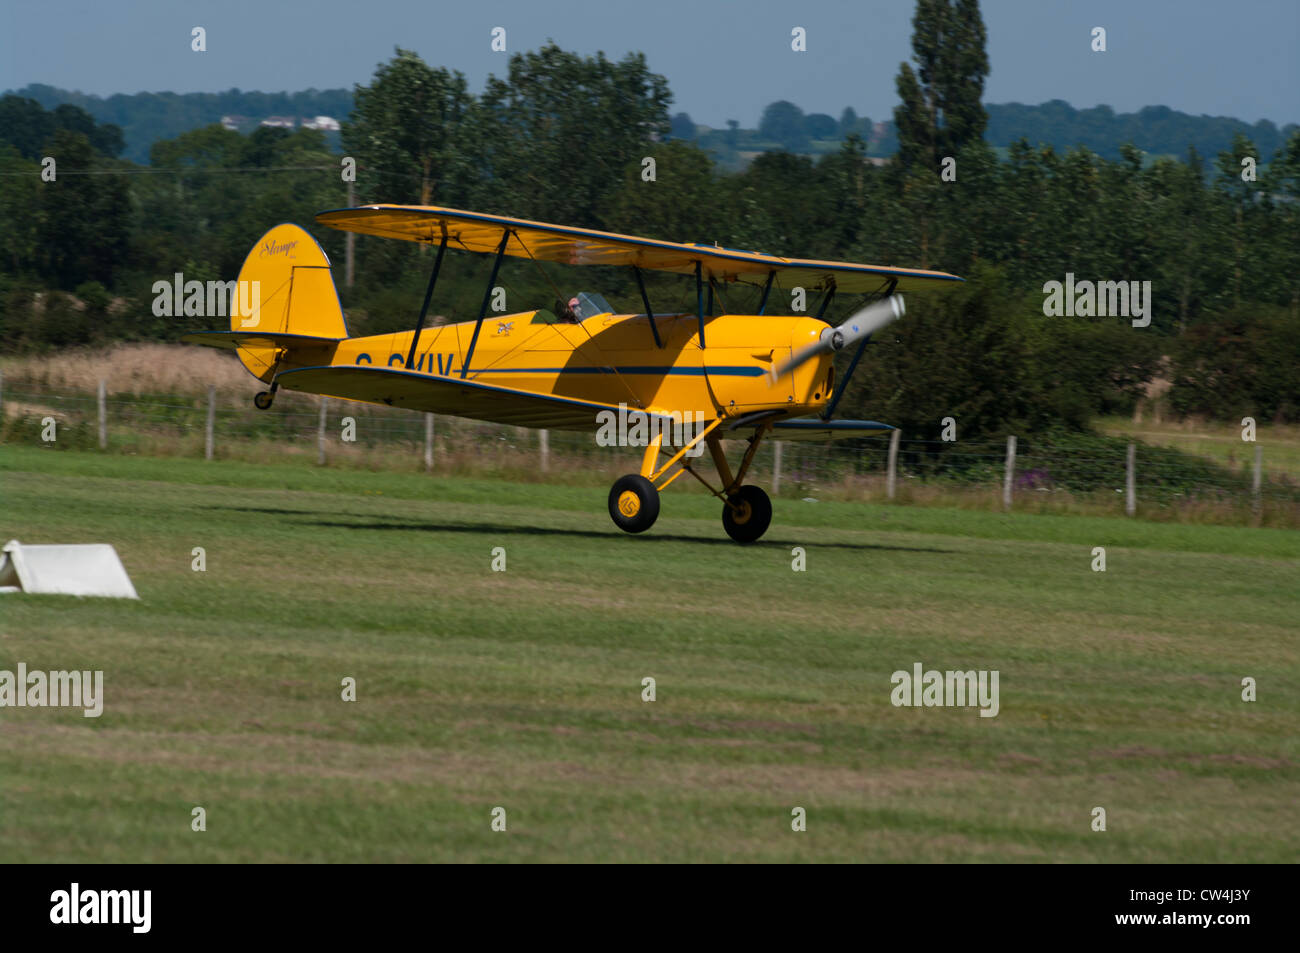 The Stampe Biplane Bi Plane UK Stock Photo